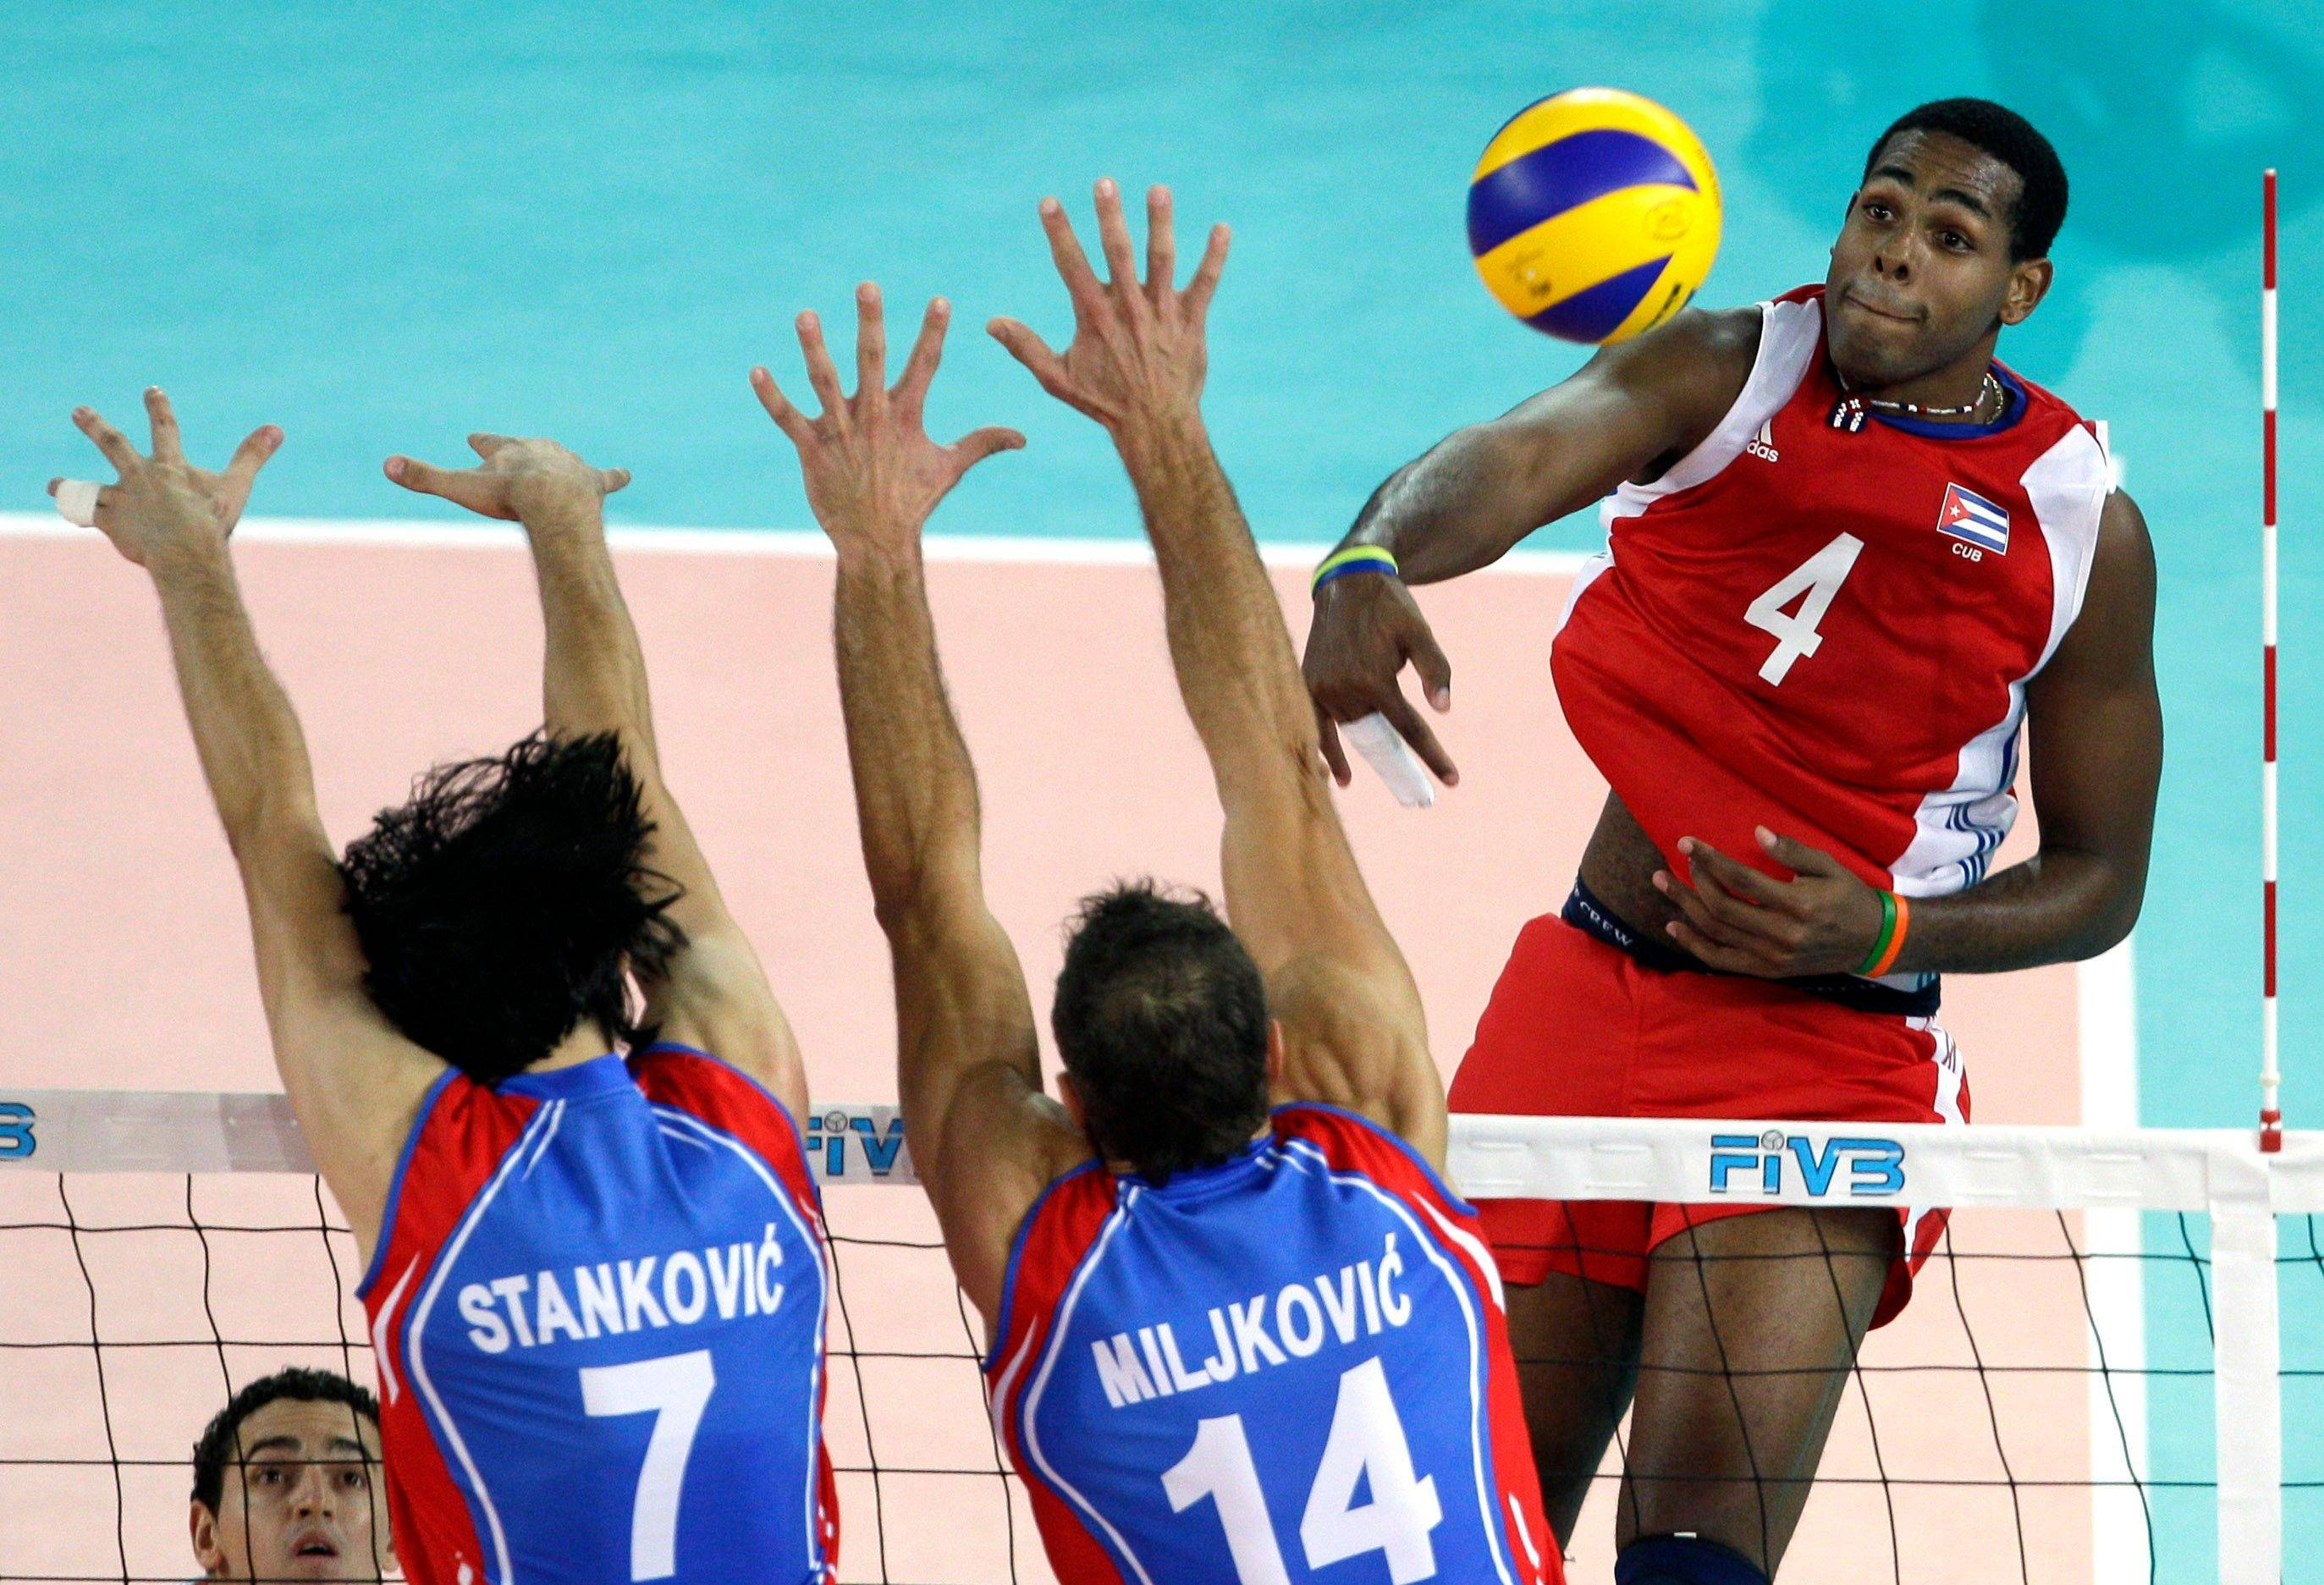 Cuba's Joandry Leal Hidalgo, right, spikes the ball past Serbia's Dragan Stankovic, left, and Ivan Miljkovic at the Men's Volleyball World Championships in Rome, Italy. State newspapers Granma and Juventud Rebelde reported that captain Roberlandy Simon and players Joandry Leal and Raydel Hierrezuelo had quit the national volleyball team that was runner-up at the 2010 World Championship in Italy. The reports said they left the team for personal reasons, but their absence sparked rumors they wanted to defect. Hierrezuelo has since returned to the squad. Cuba has always had a problem keeping talent on the island, but the exodus in sports and entertainment seems to be growing.